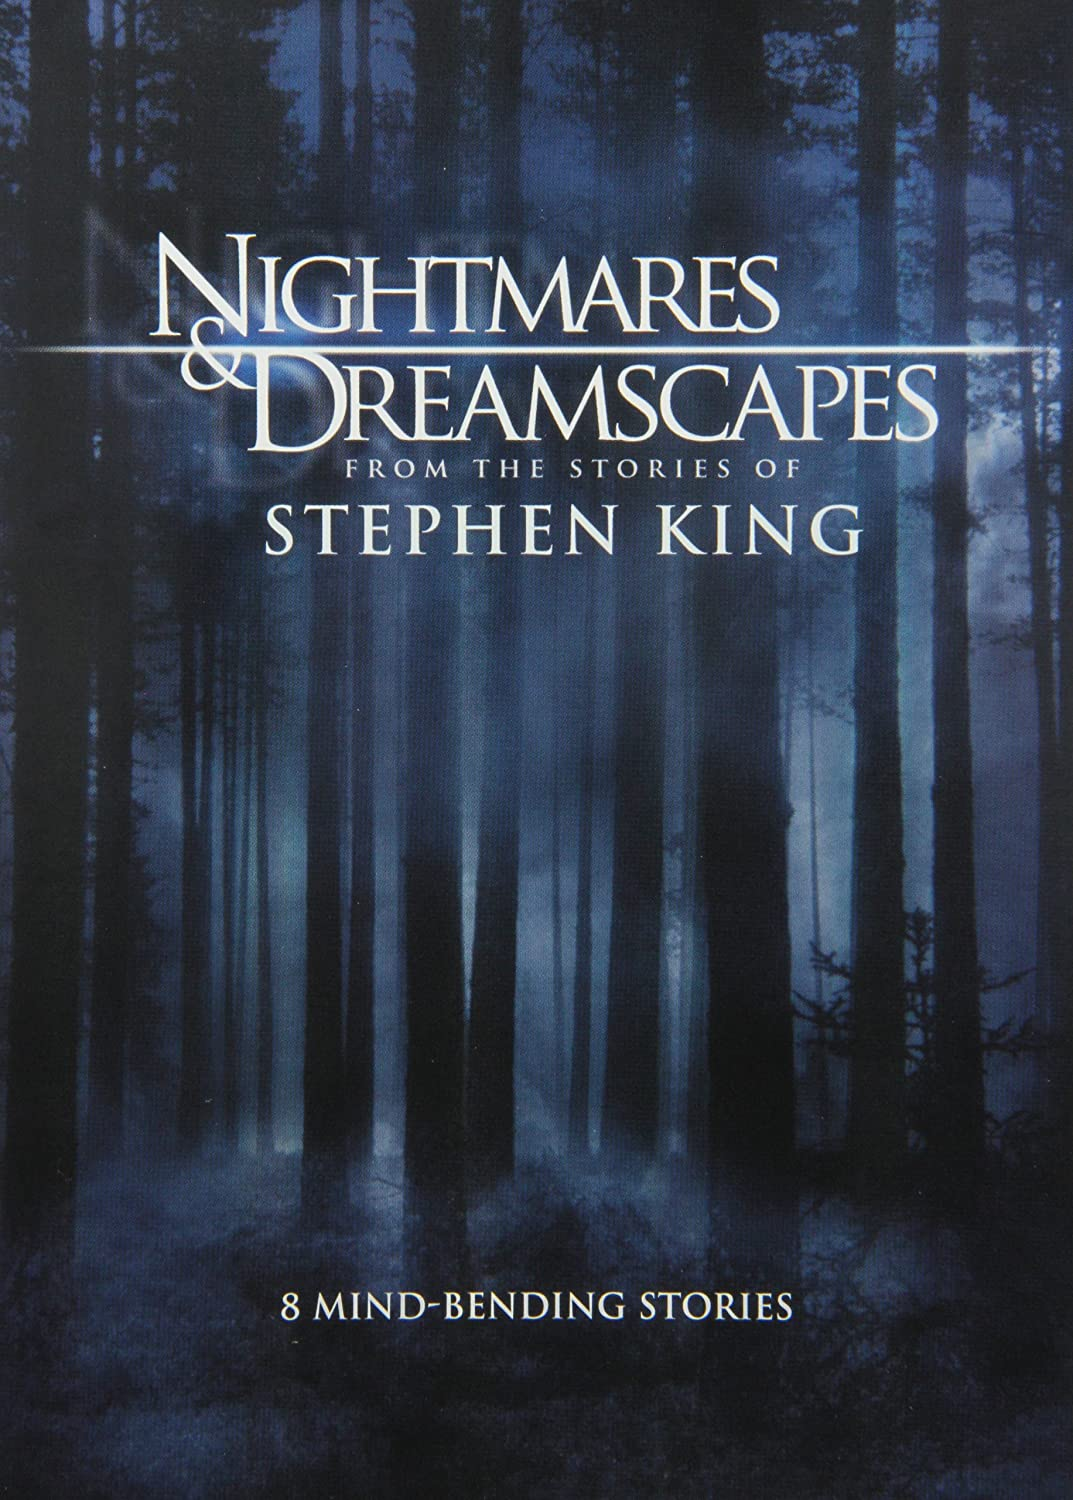 Amazon com: Nightmares & Dreamscapes - From the Stories of